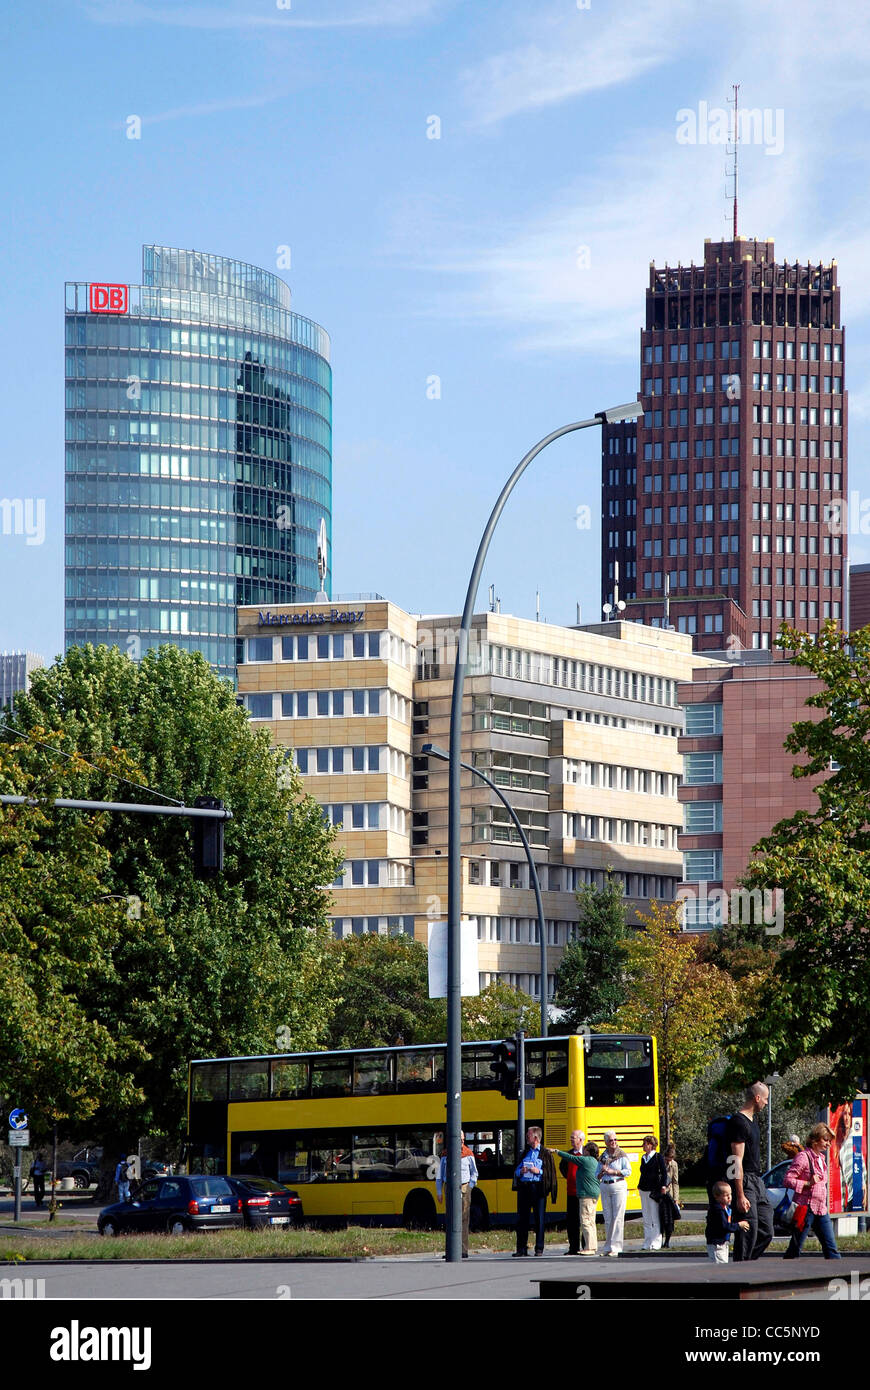 Skyscrapers at the Potsdam place in Berlin. - Stock Image